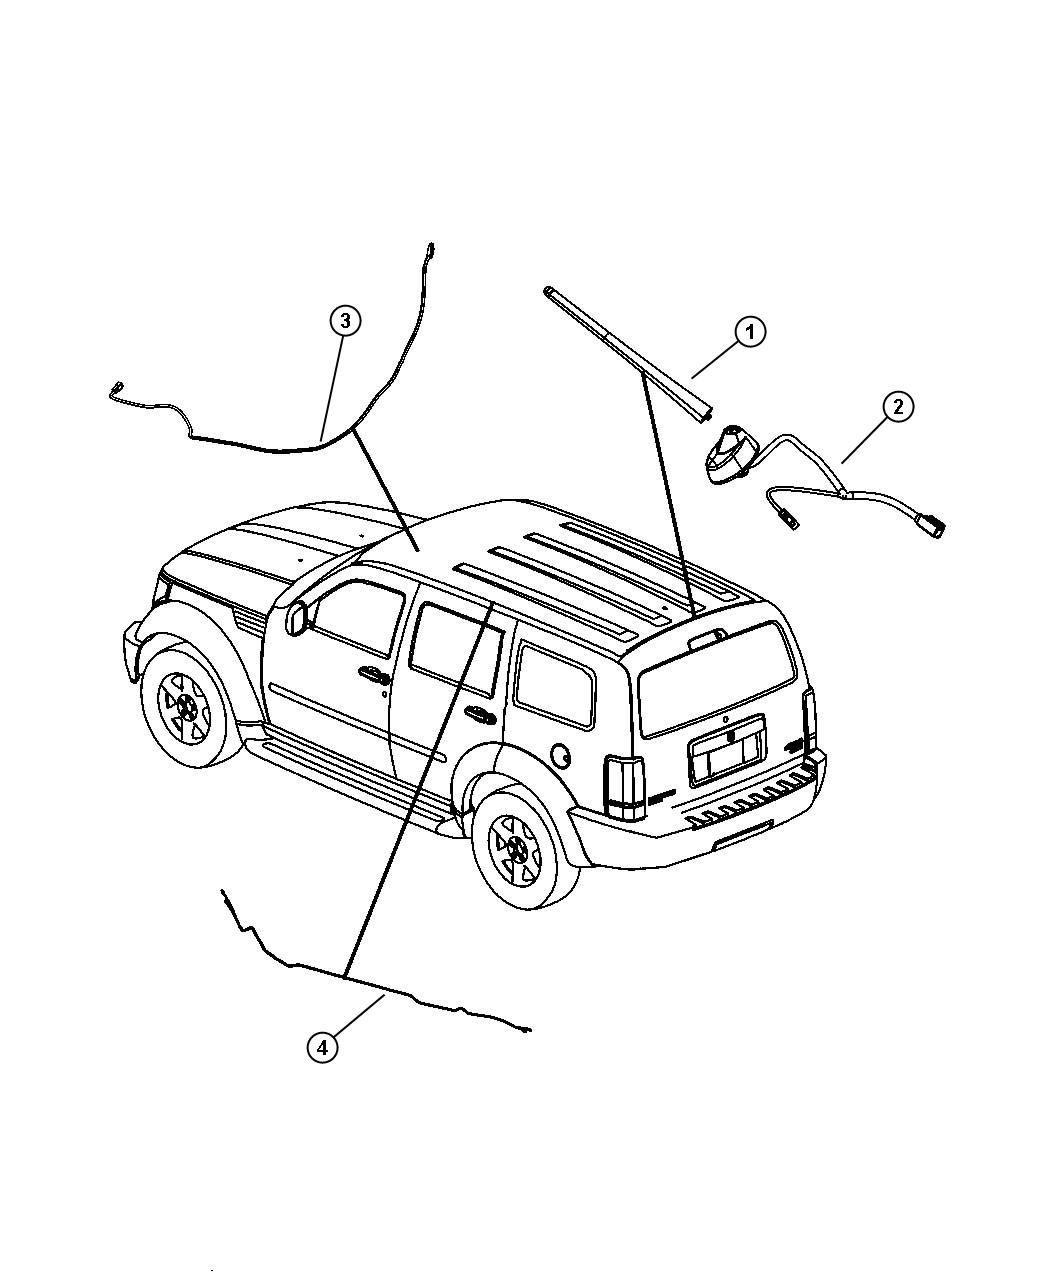 2013 Jeep Grand Cherokee Antenna. Base cable and bracket